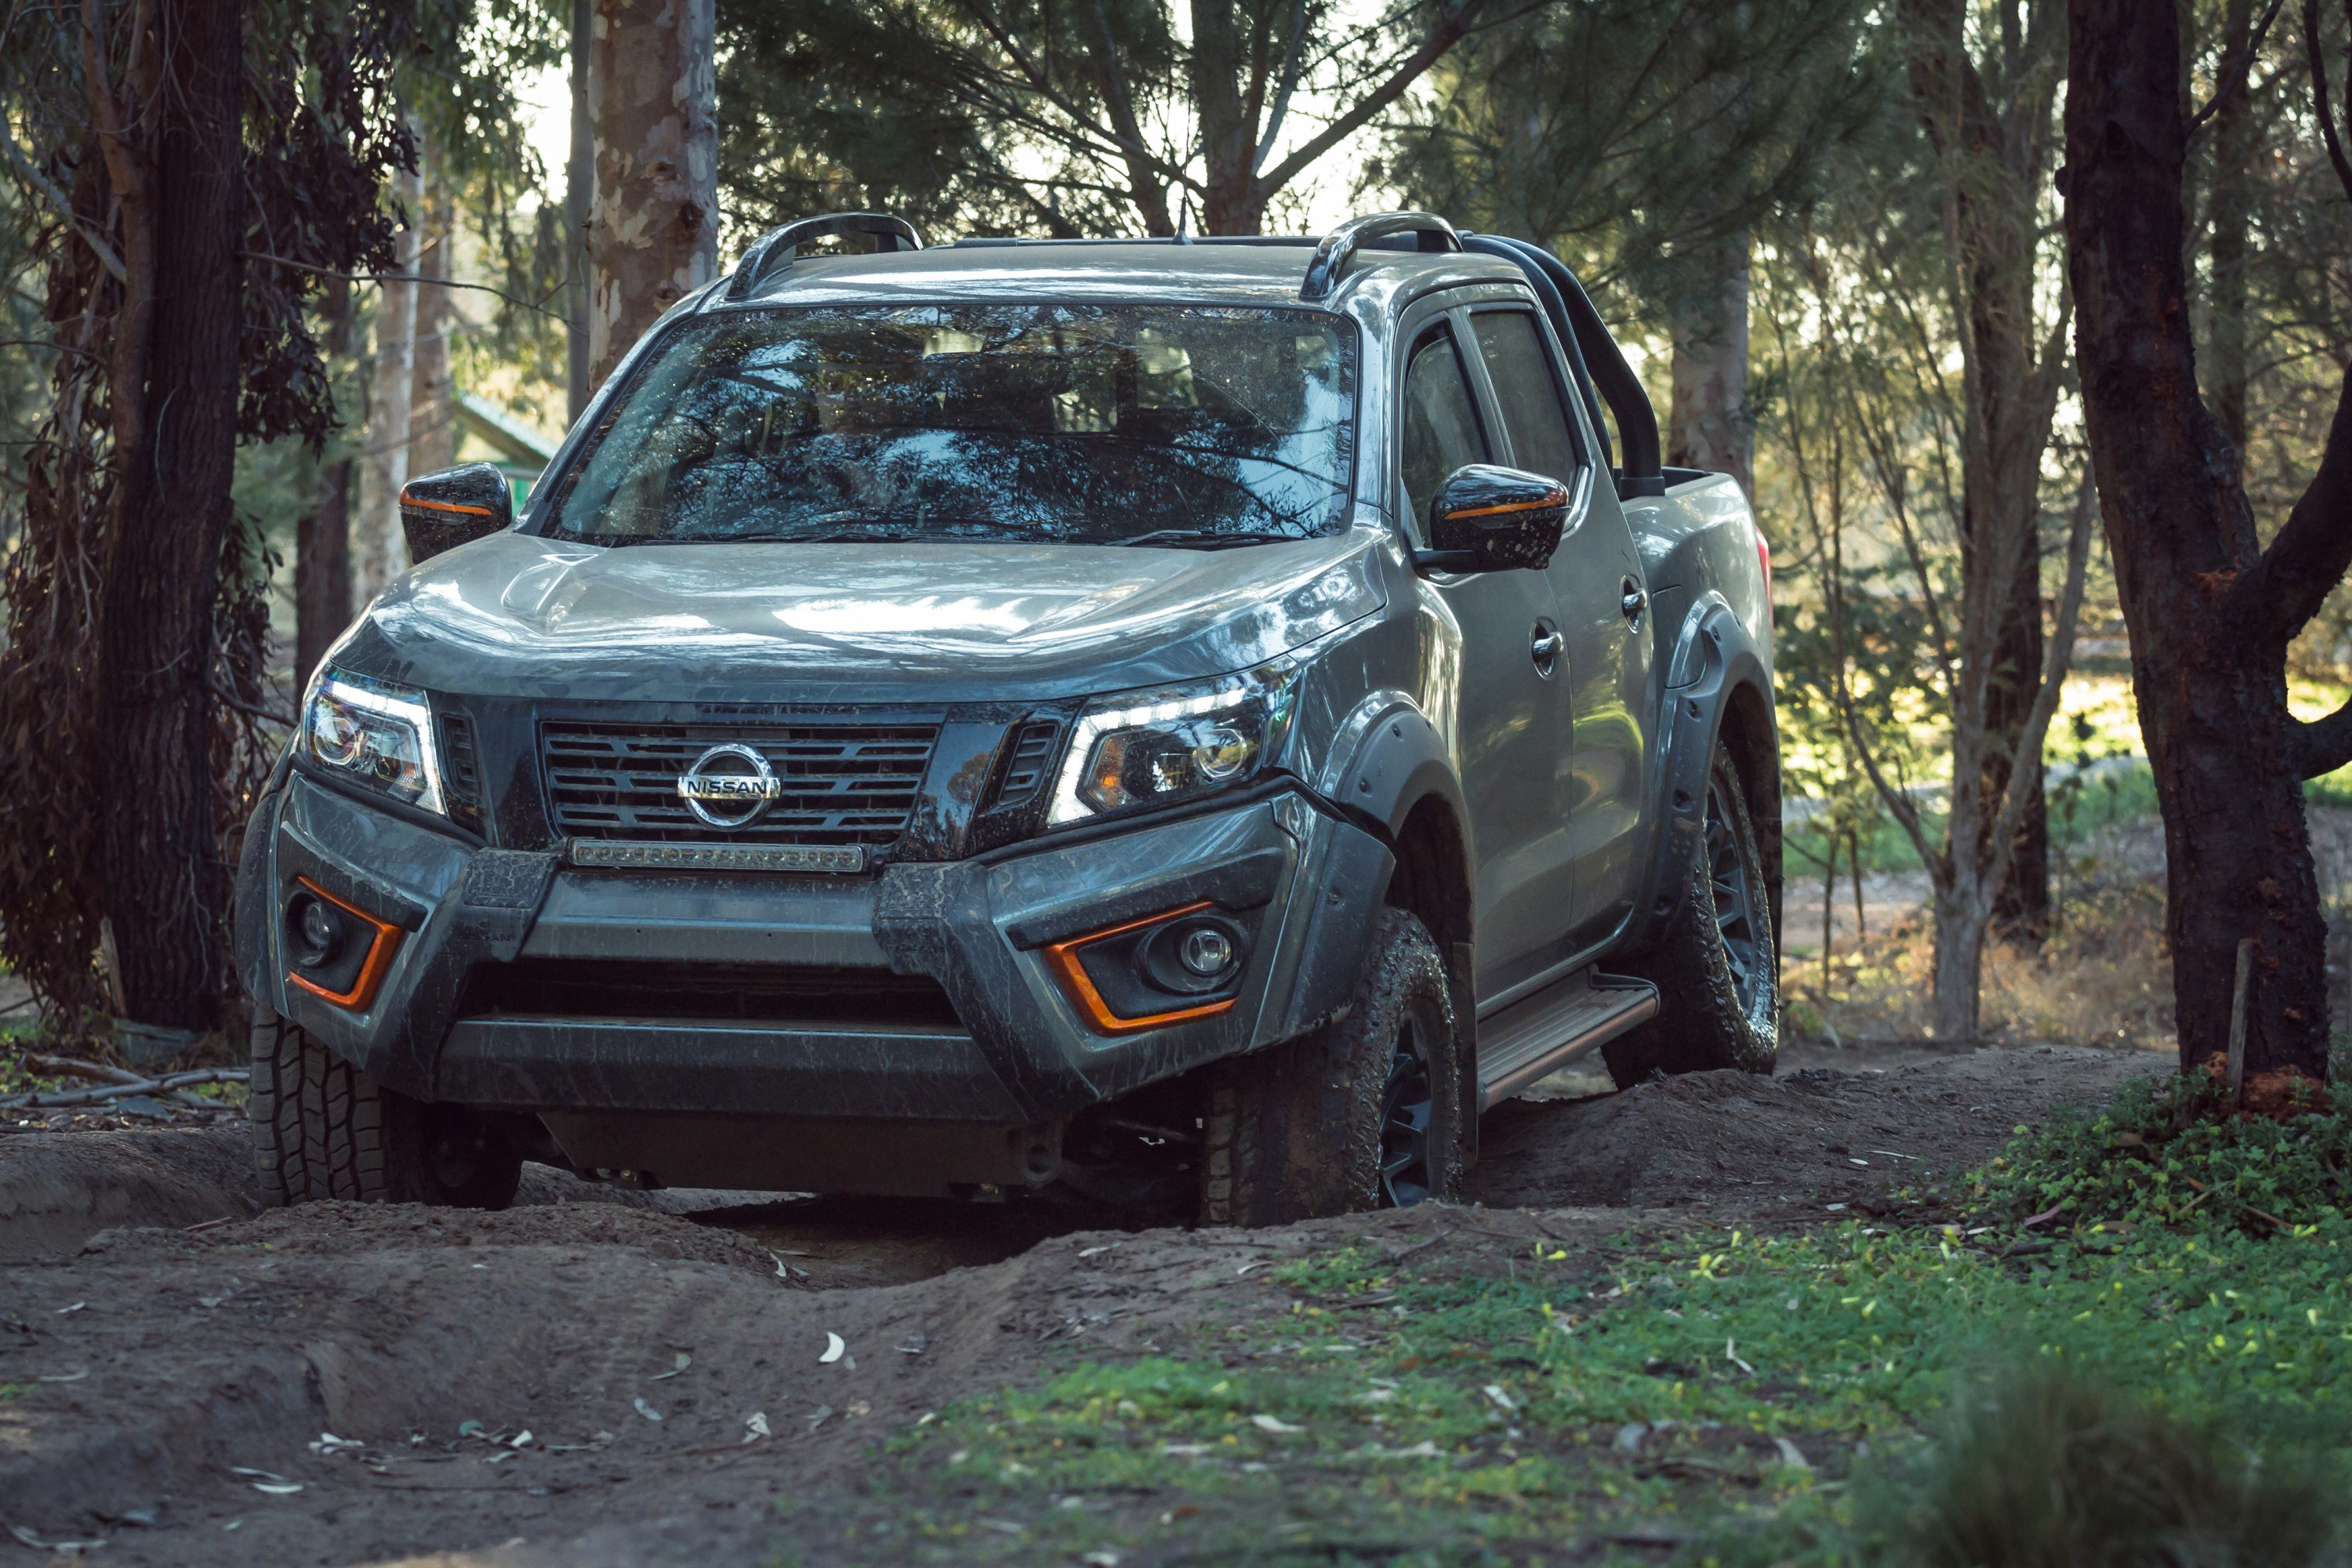 Nissan Navara N-TREK 1 wheel articulation ThomasWielecki